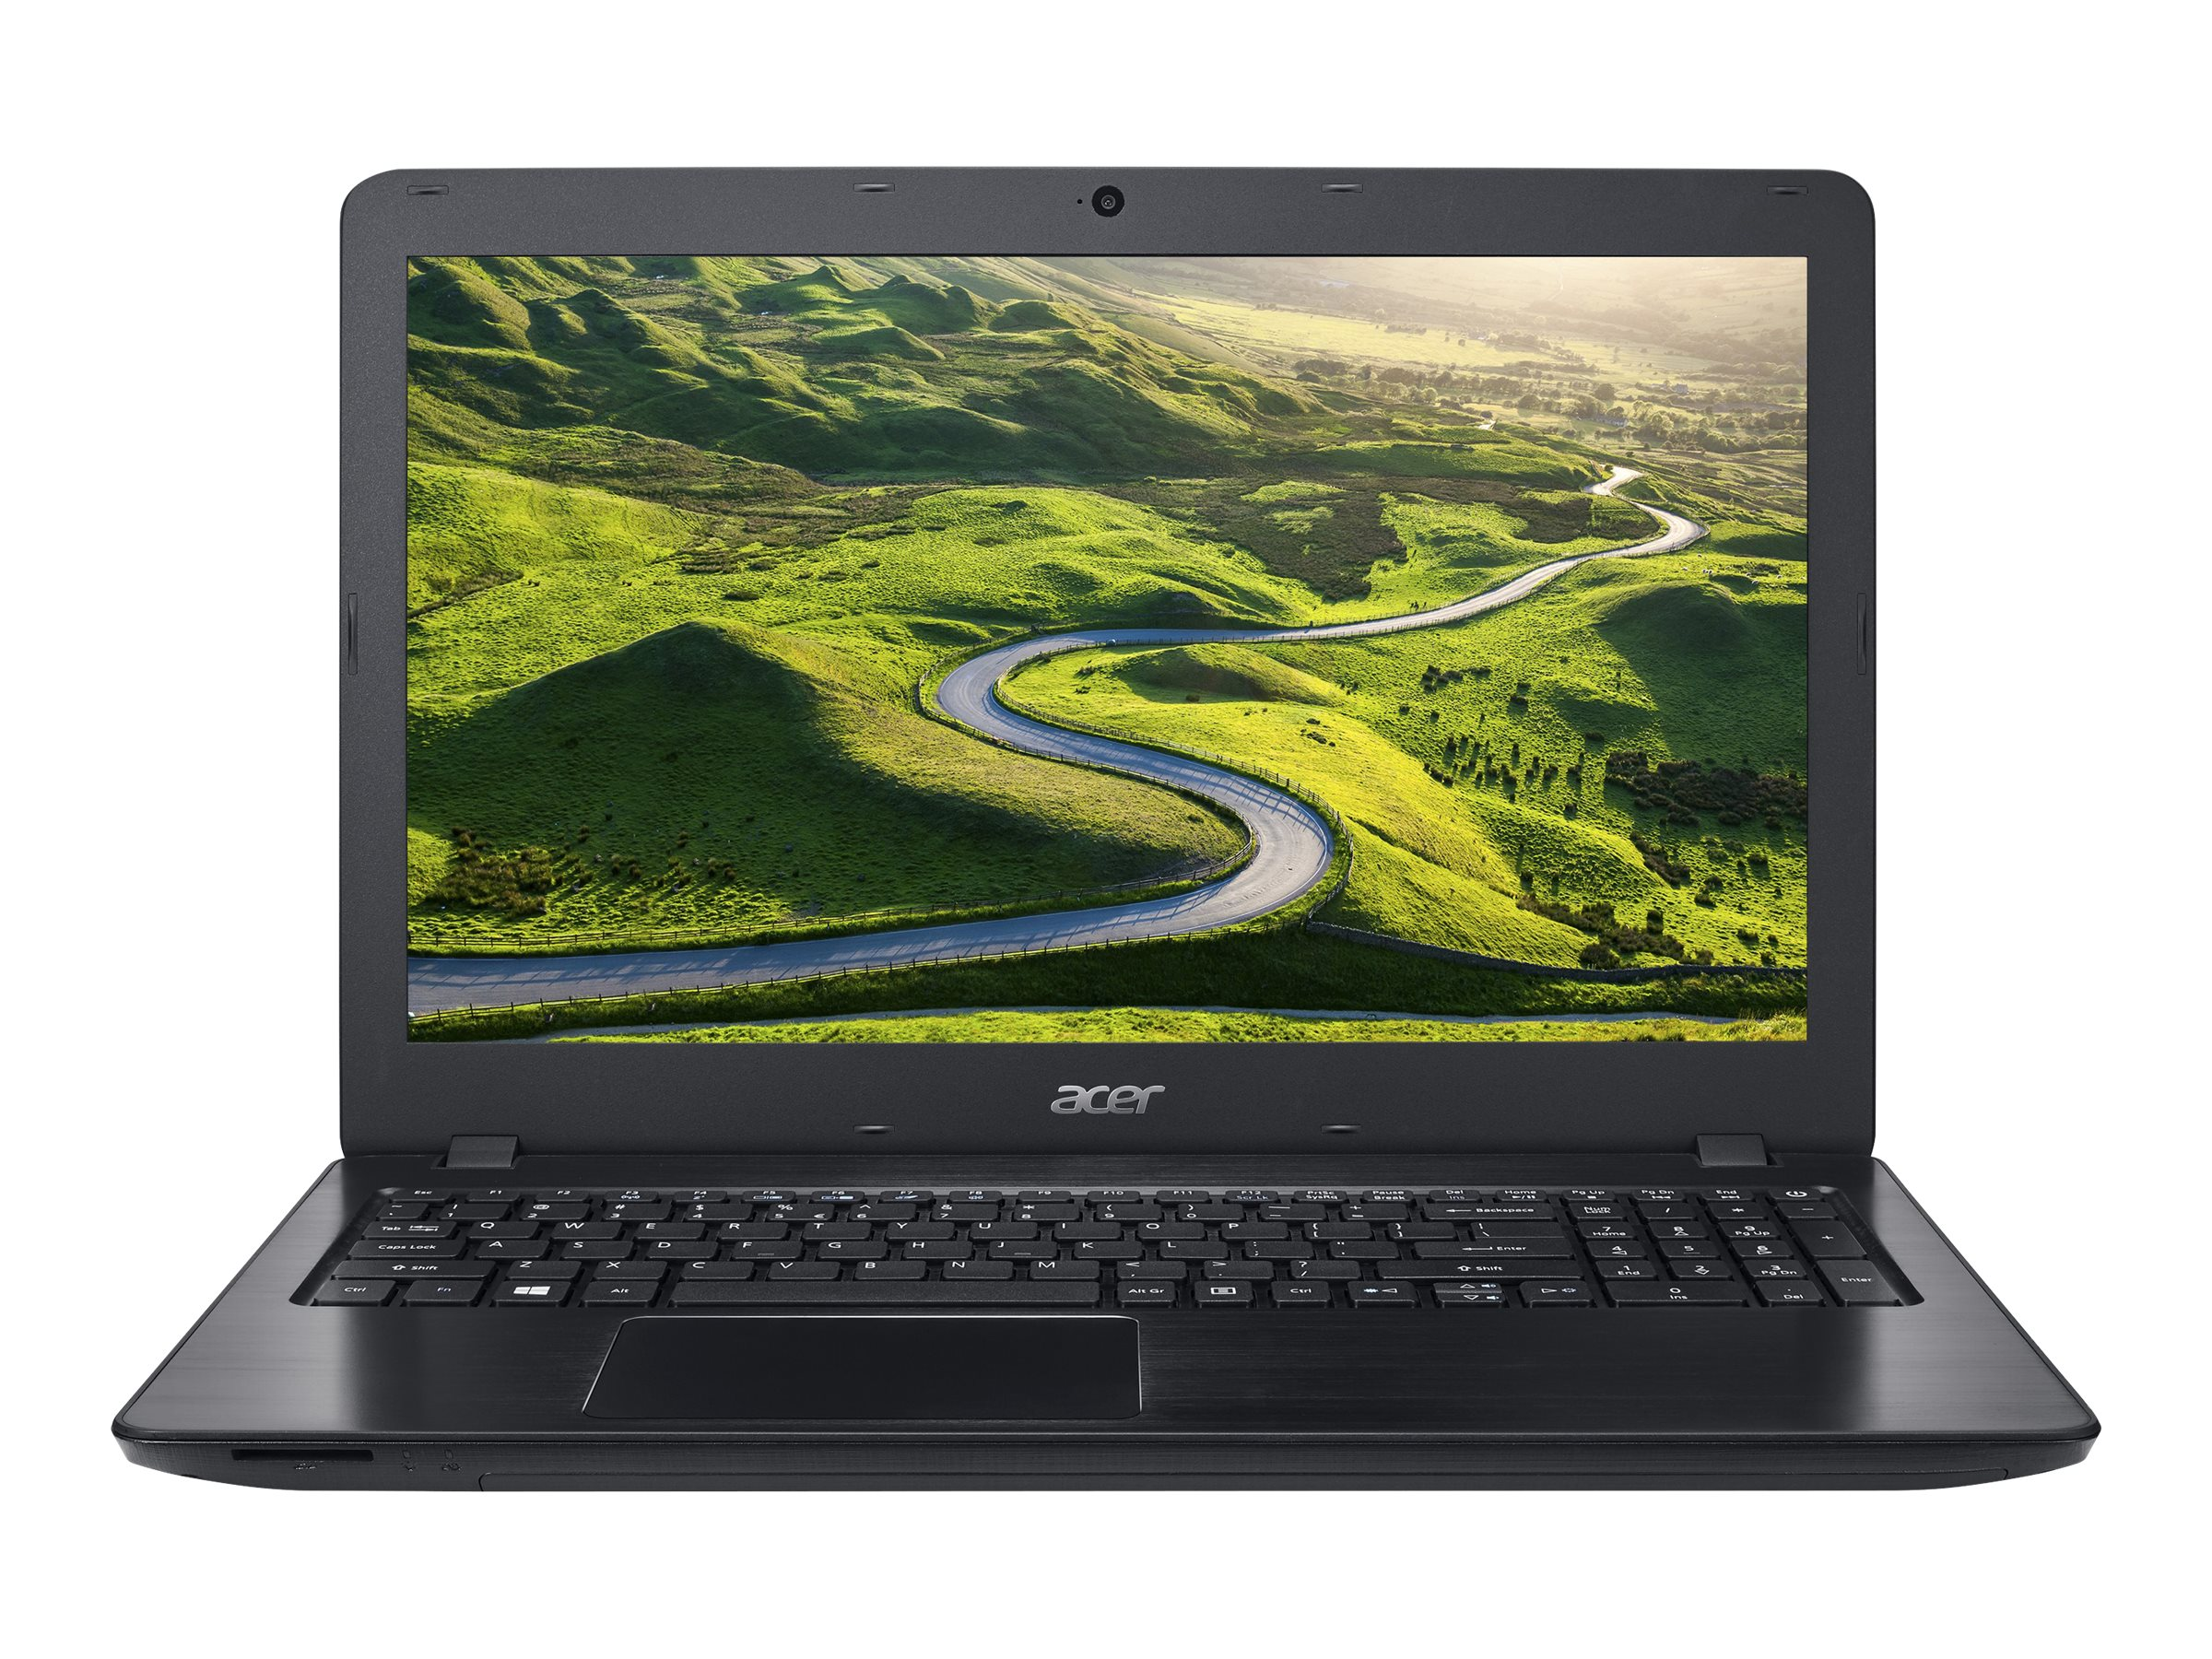 Acer Aspire F5-573-7630 2.7GHz Core i7 15.6in display, NX.GD3AA.002